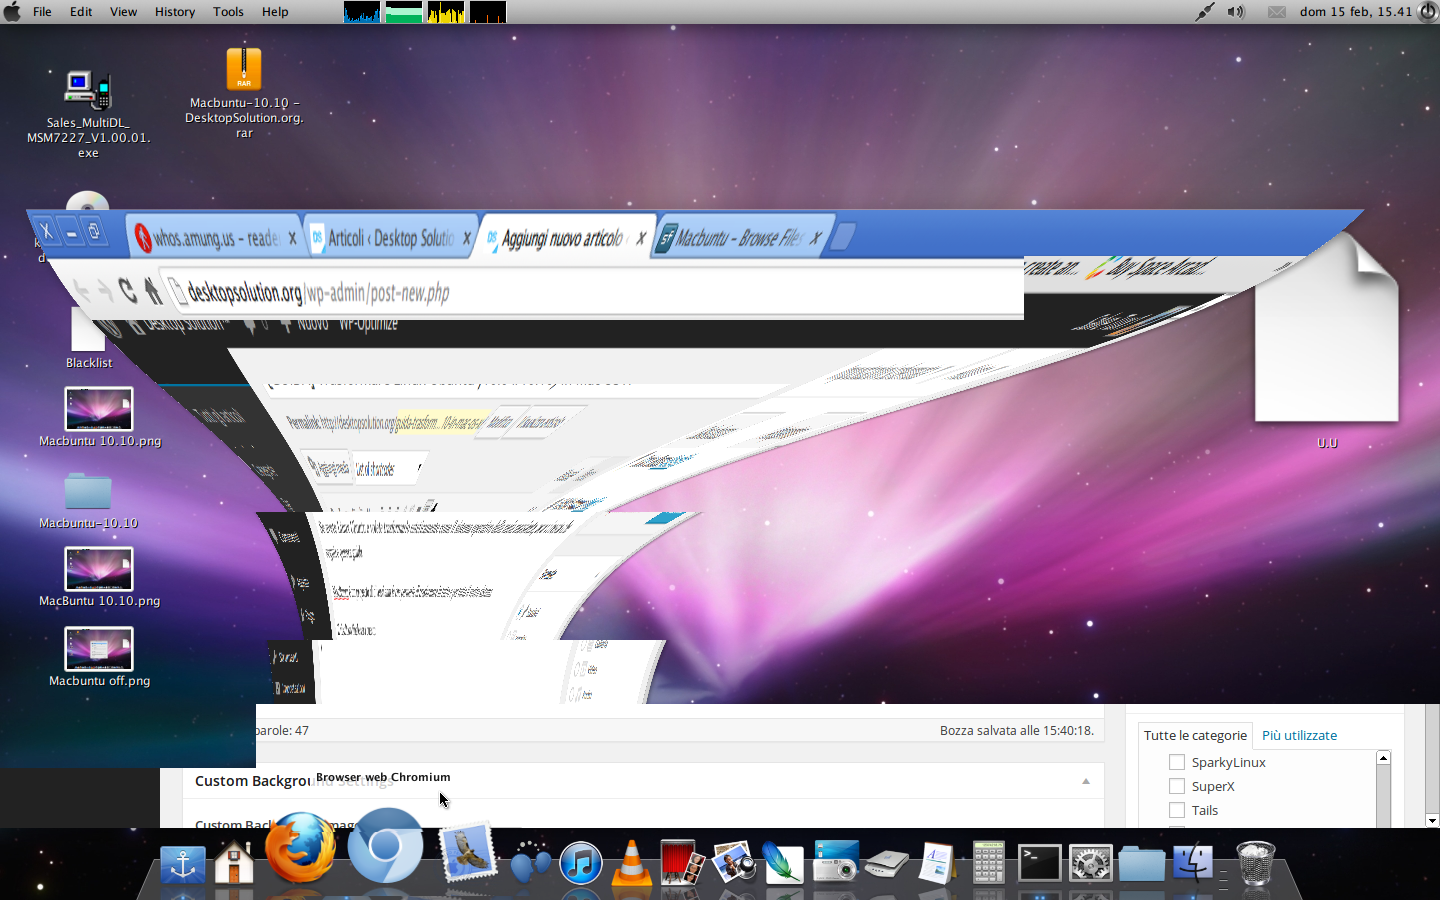 Macbuntu open windows